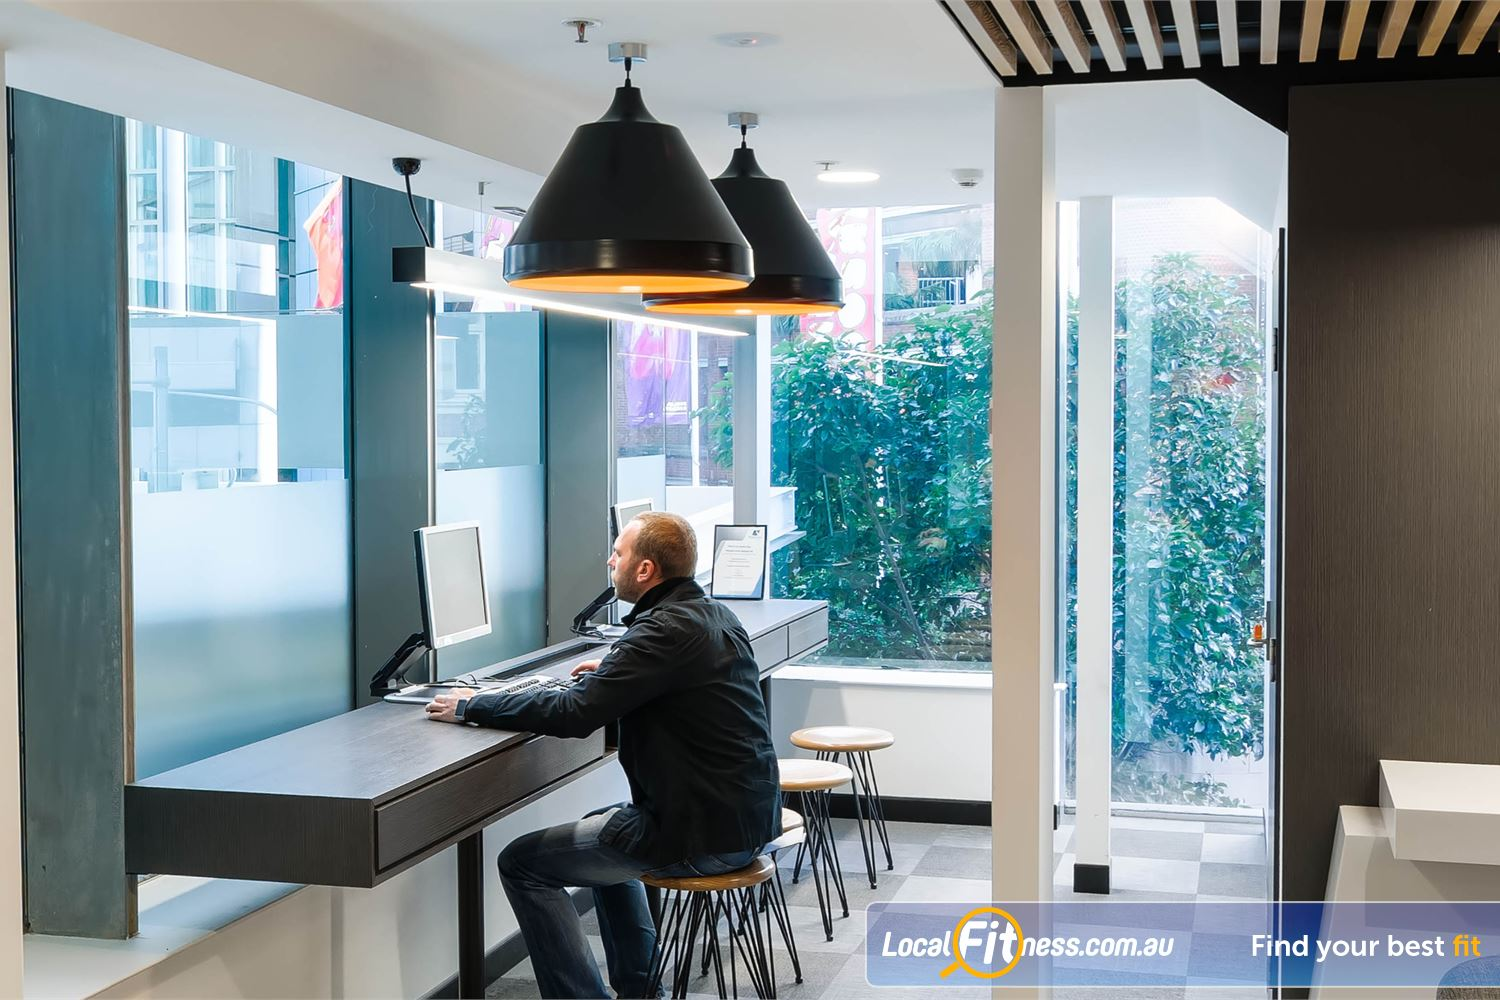 Fitness First Platinum Market St. Sydney Stay connected with our technology bar with WiFi access.